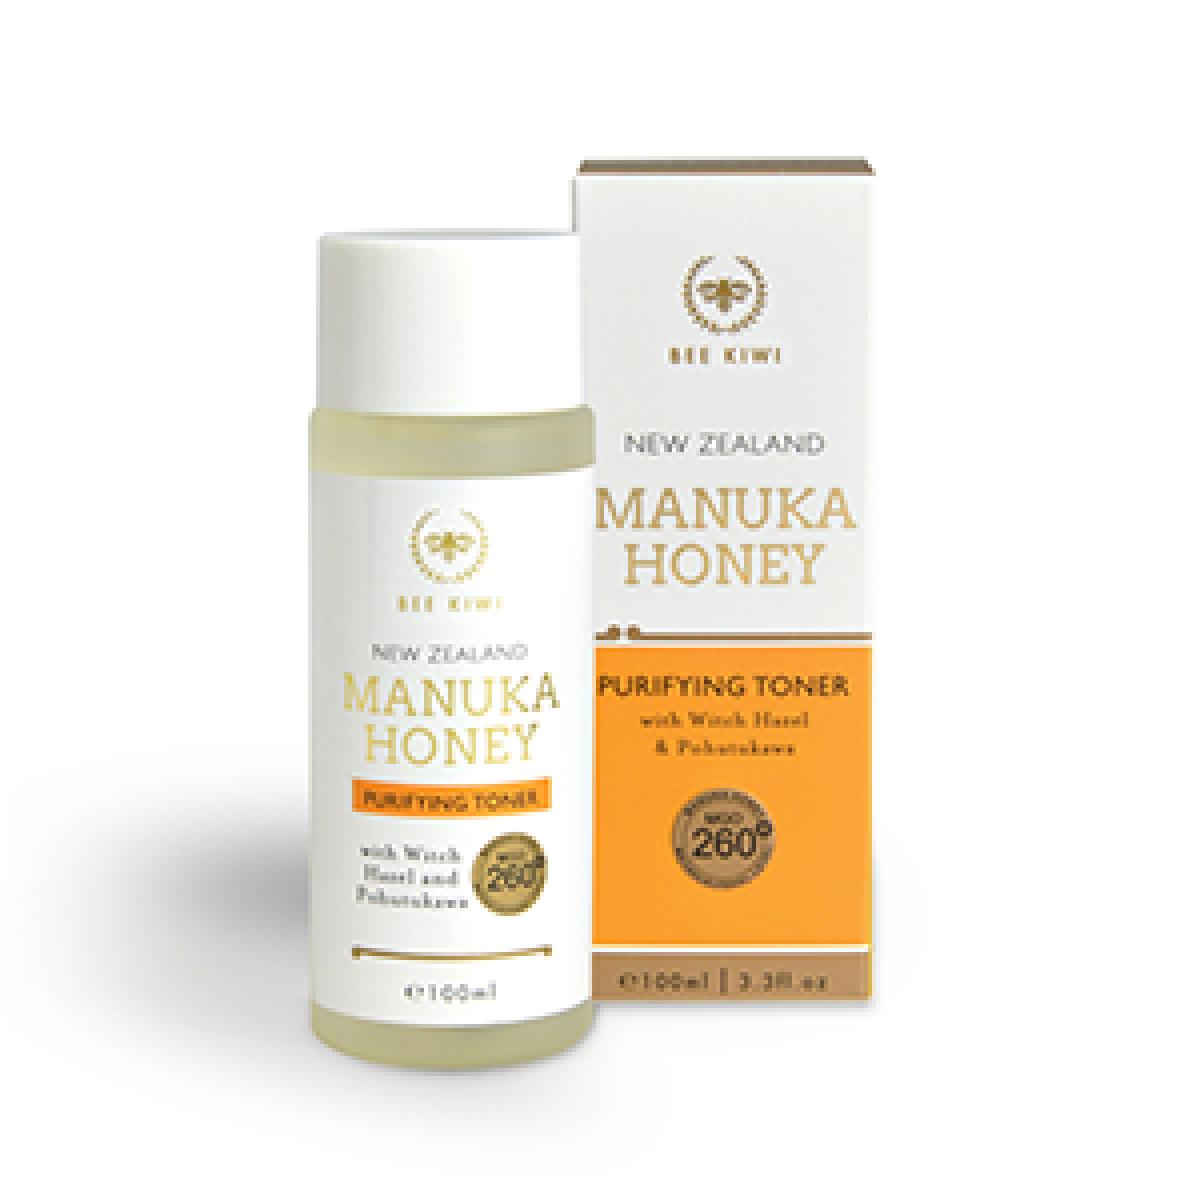 Bee Kiwi Manuka Honey Purifying Toner 100ml